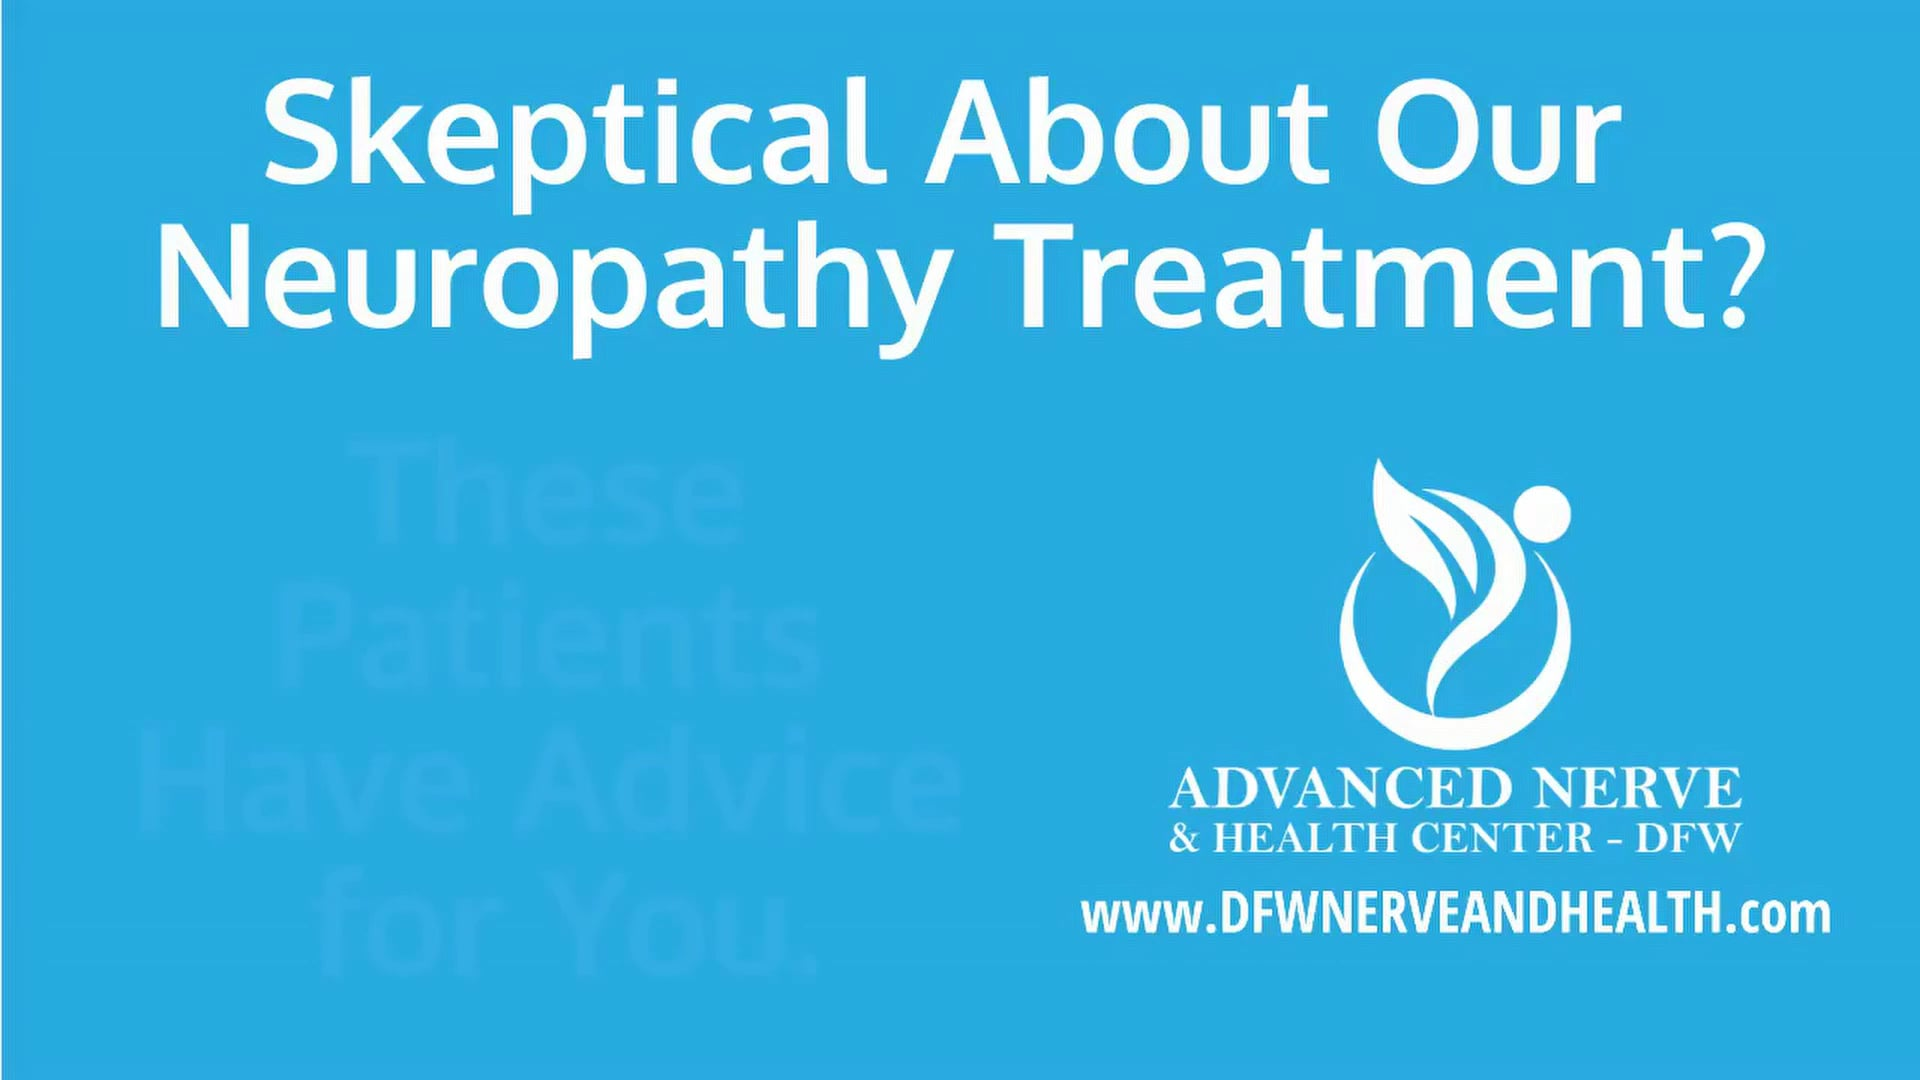 Skeptical About Our Treatment?